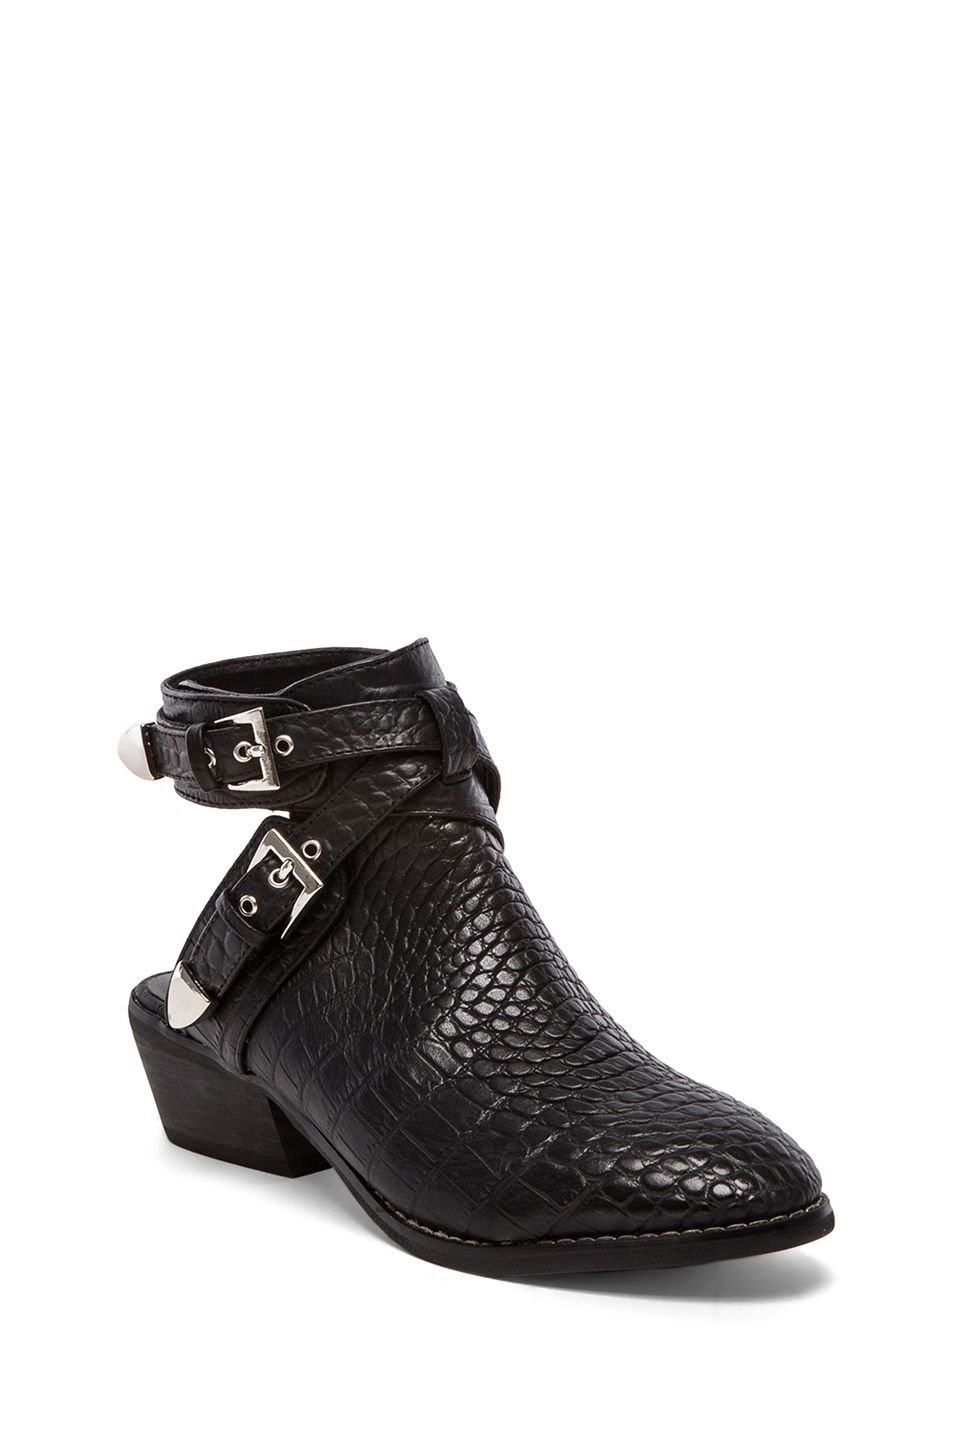 Steve Madden Moscow Bootie